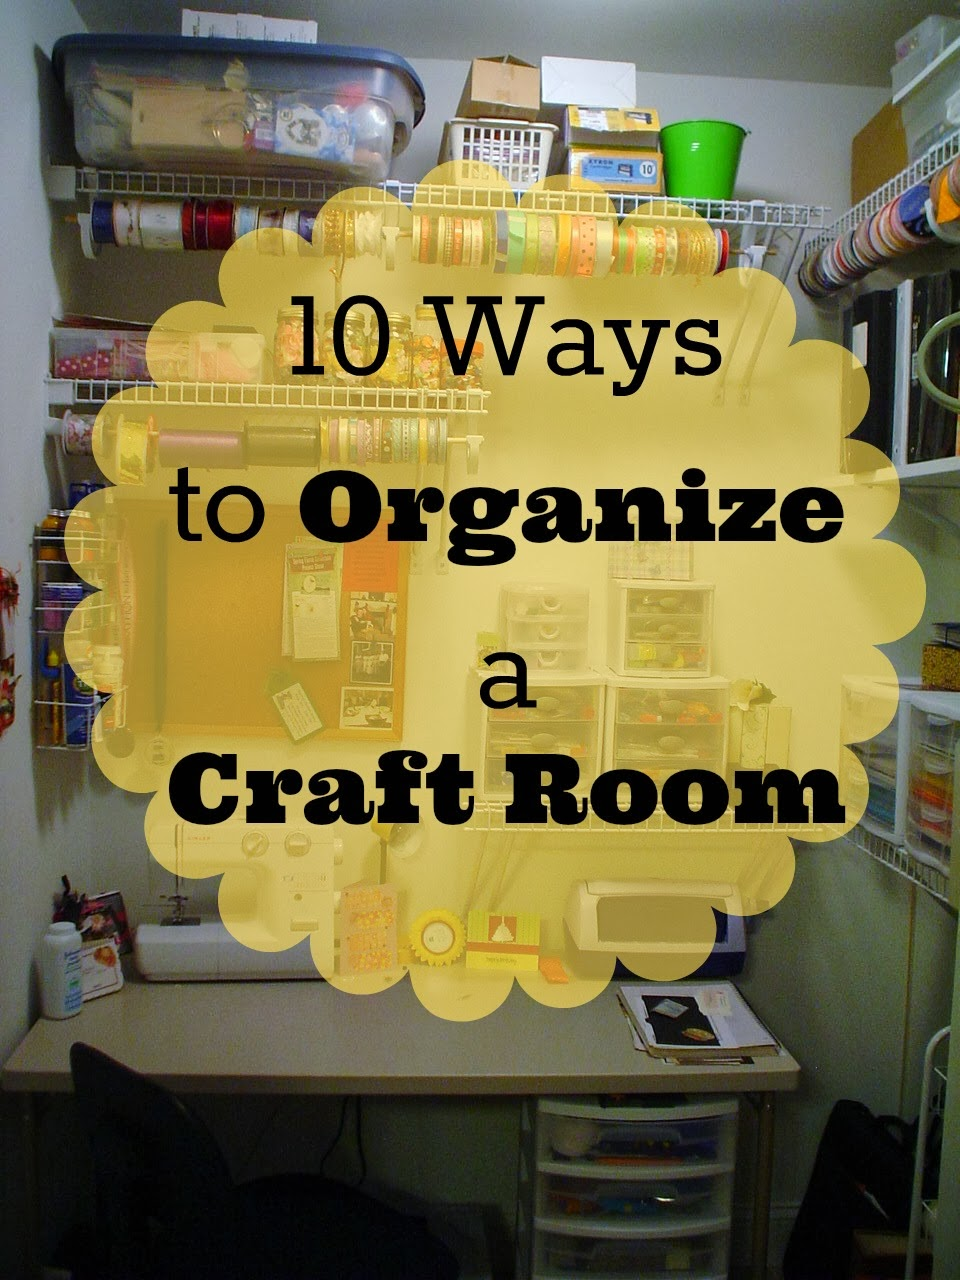 Southern scraps organize it the craft room 10 ways for How to organize your room and closet